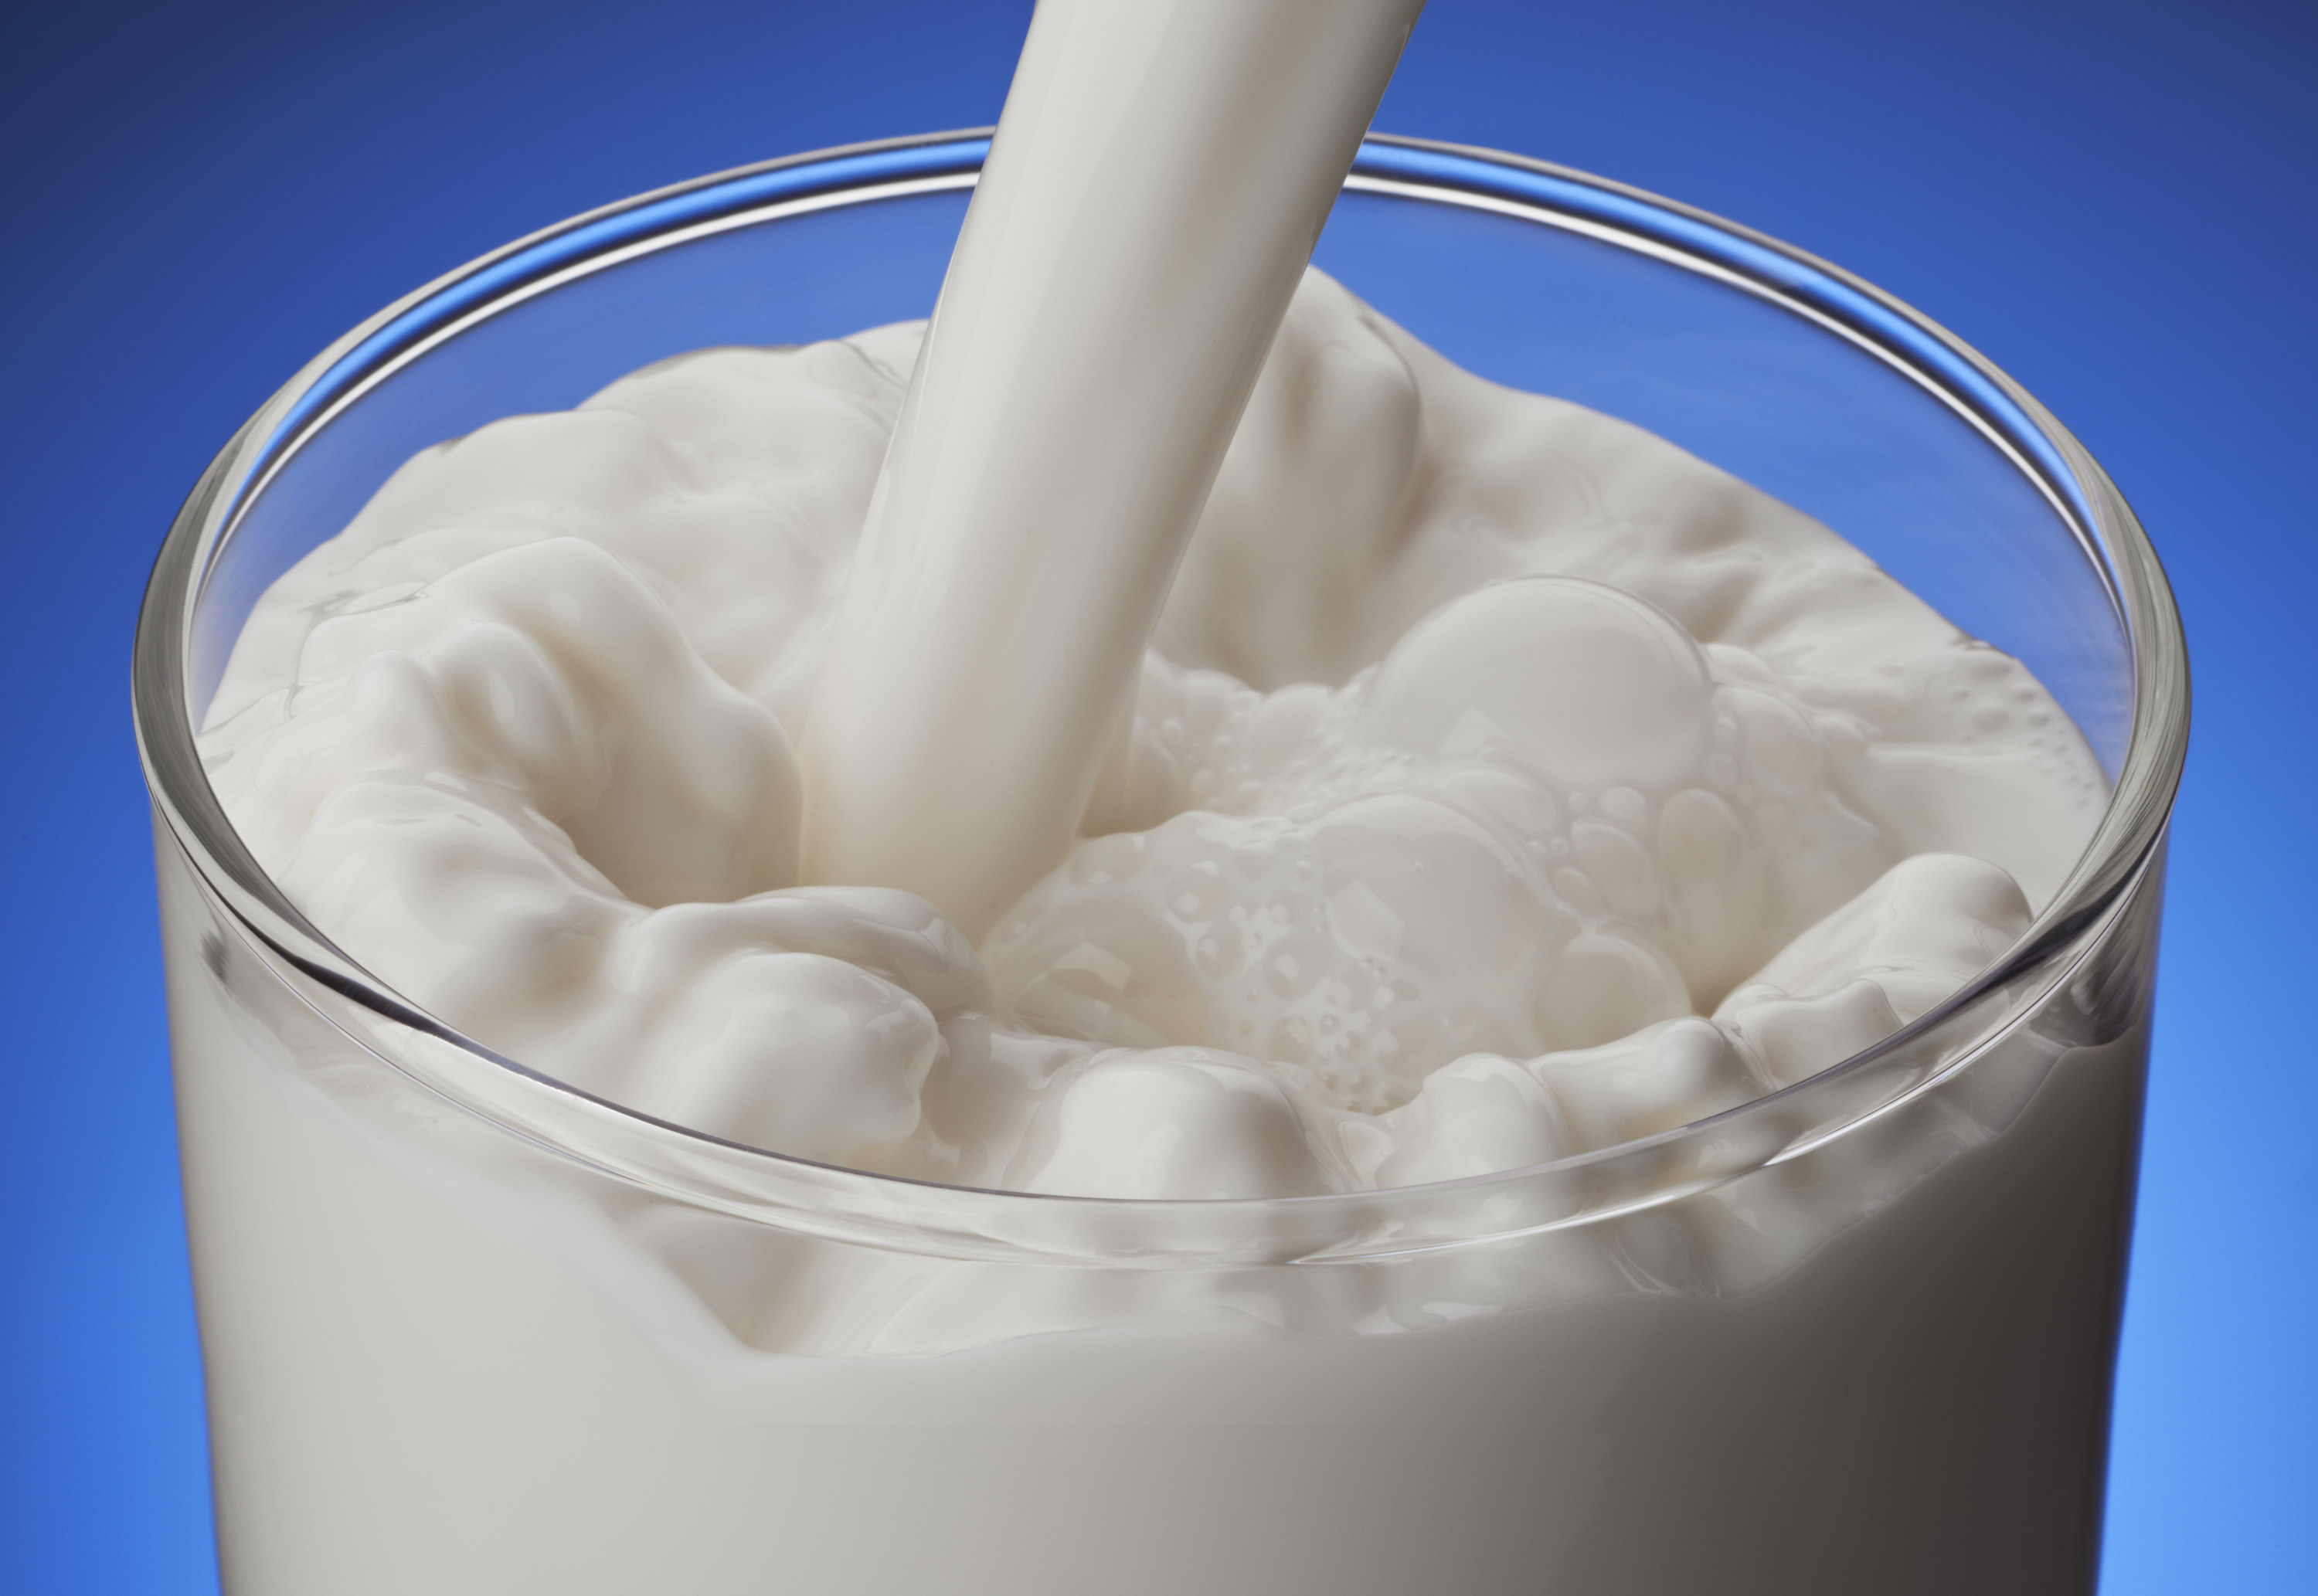 Glass of milk being filled with milk. Picture is shot against a dark blue background.